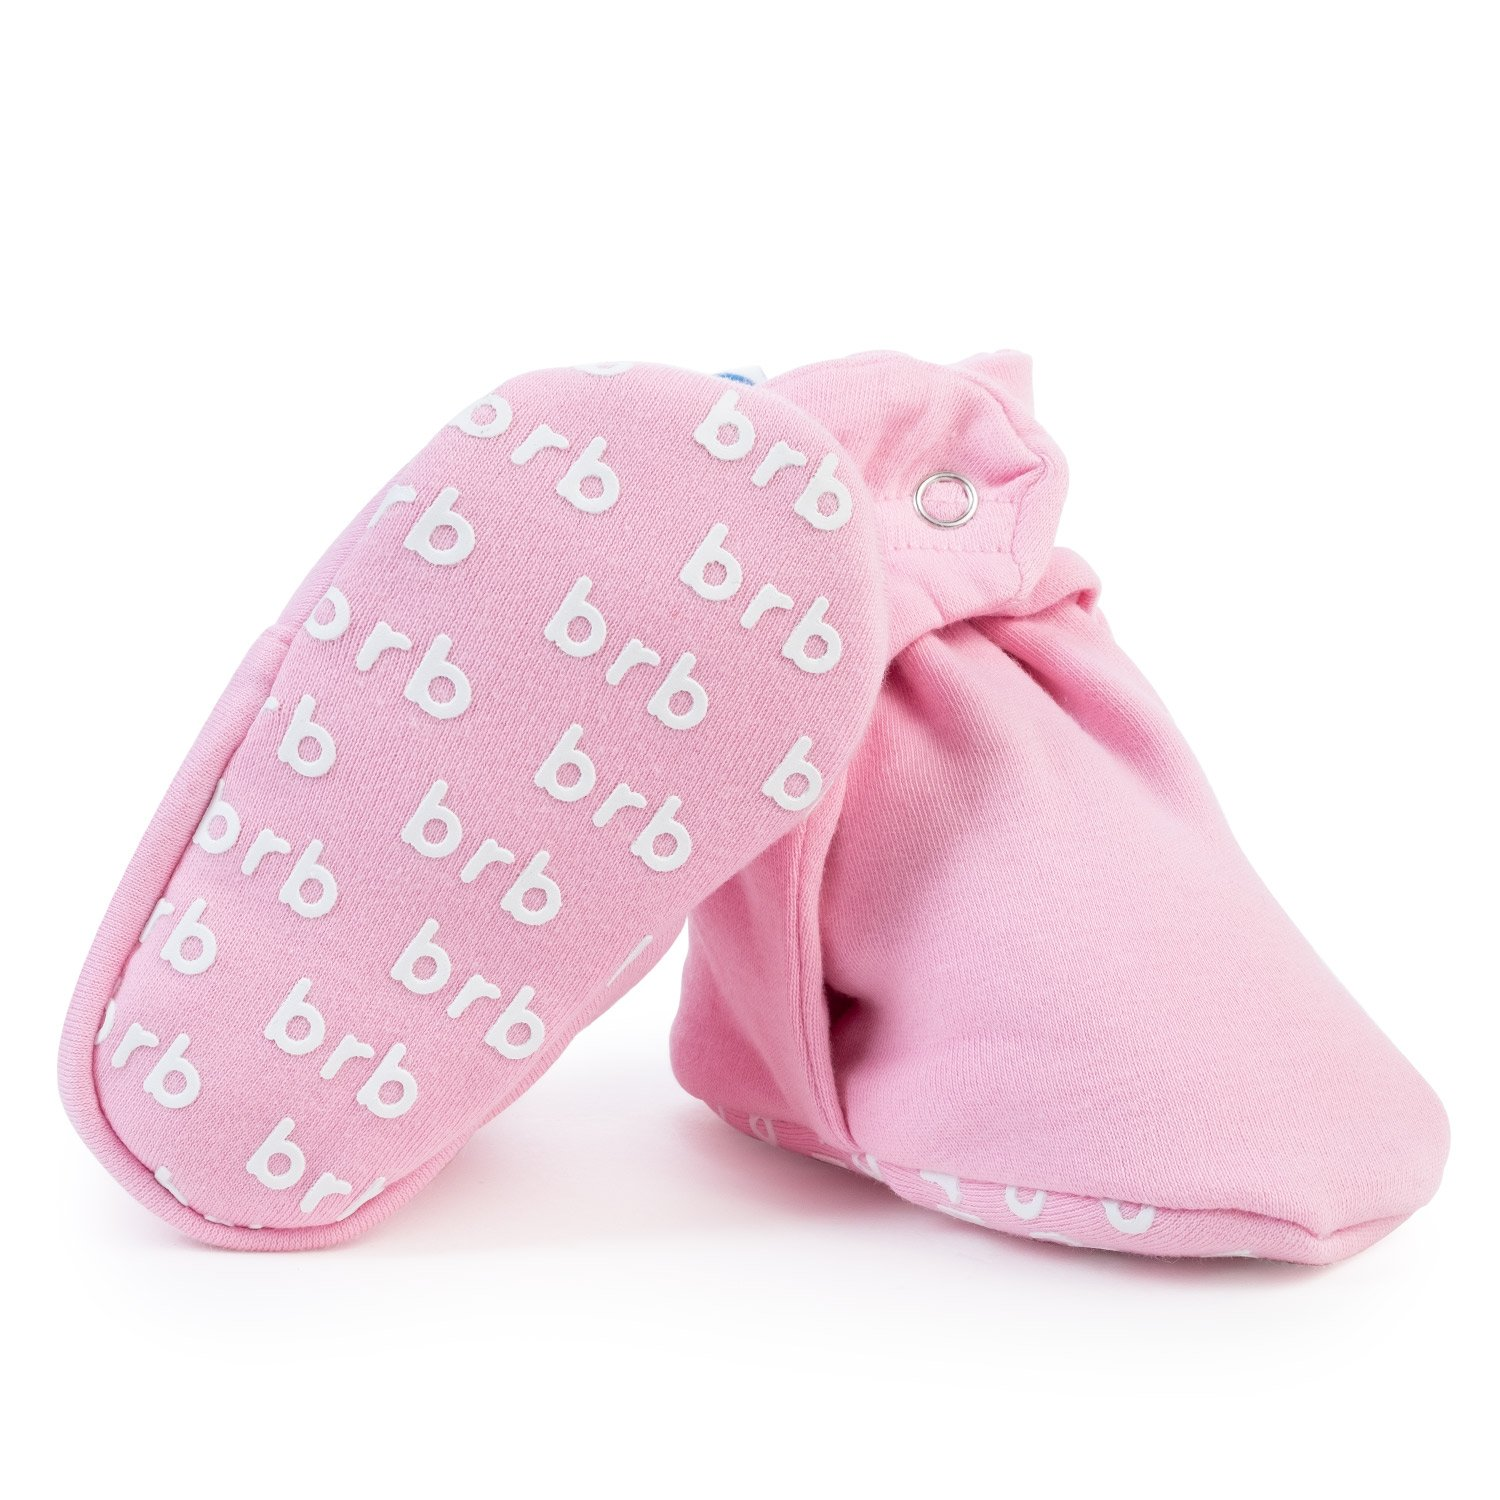 Lightweight Organic Cotton Baby Booties - Grippers, 3 Snaps - No Sock Bootie for Newborn Or Infant Boys & Girls (Ballet Pink, US 1)